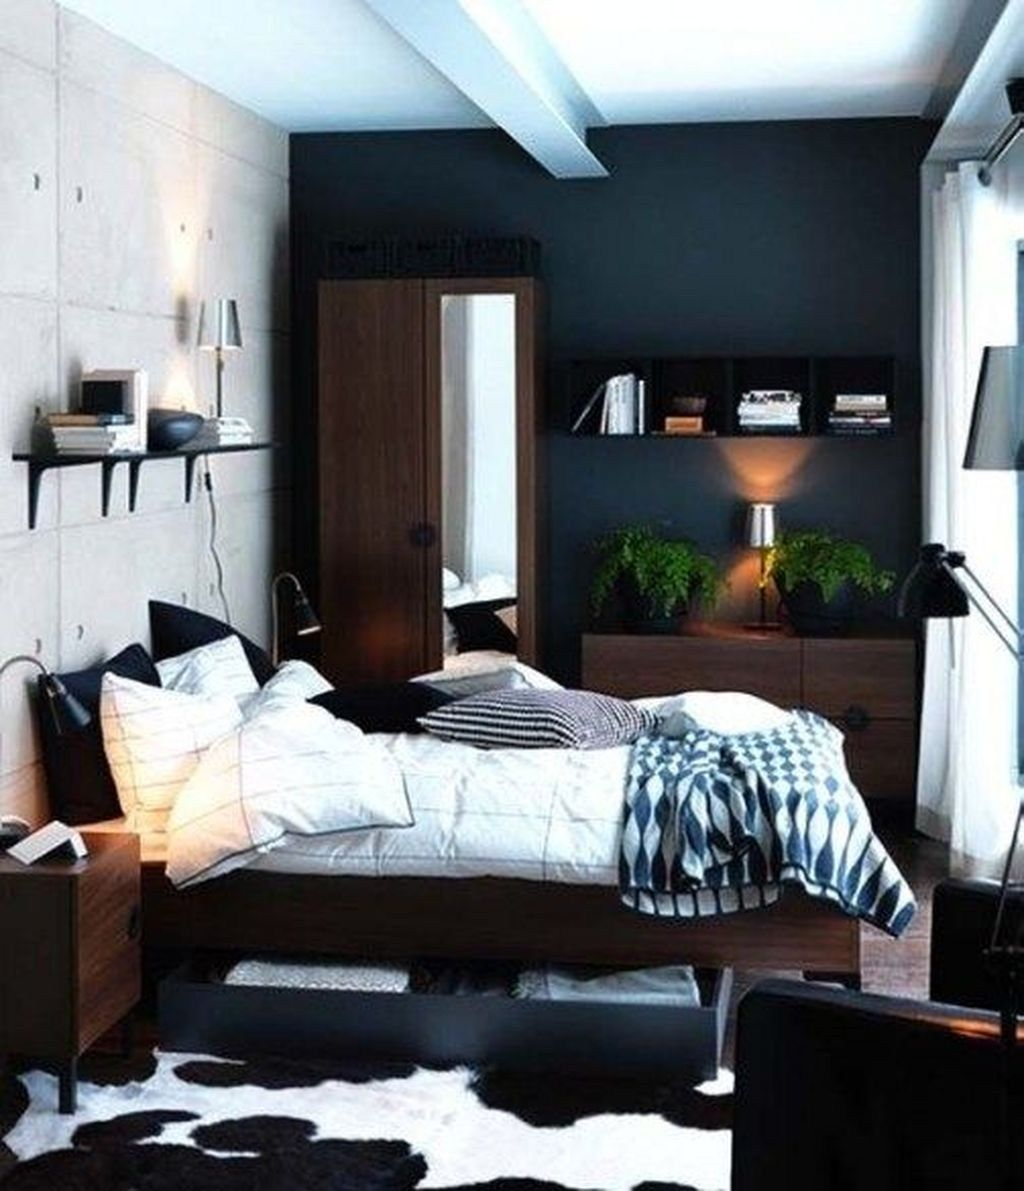 Cozy Single Bedroom Design Ideas For Men 19 Small Bedroom